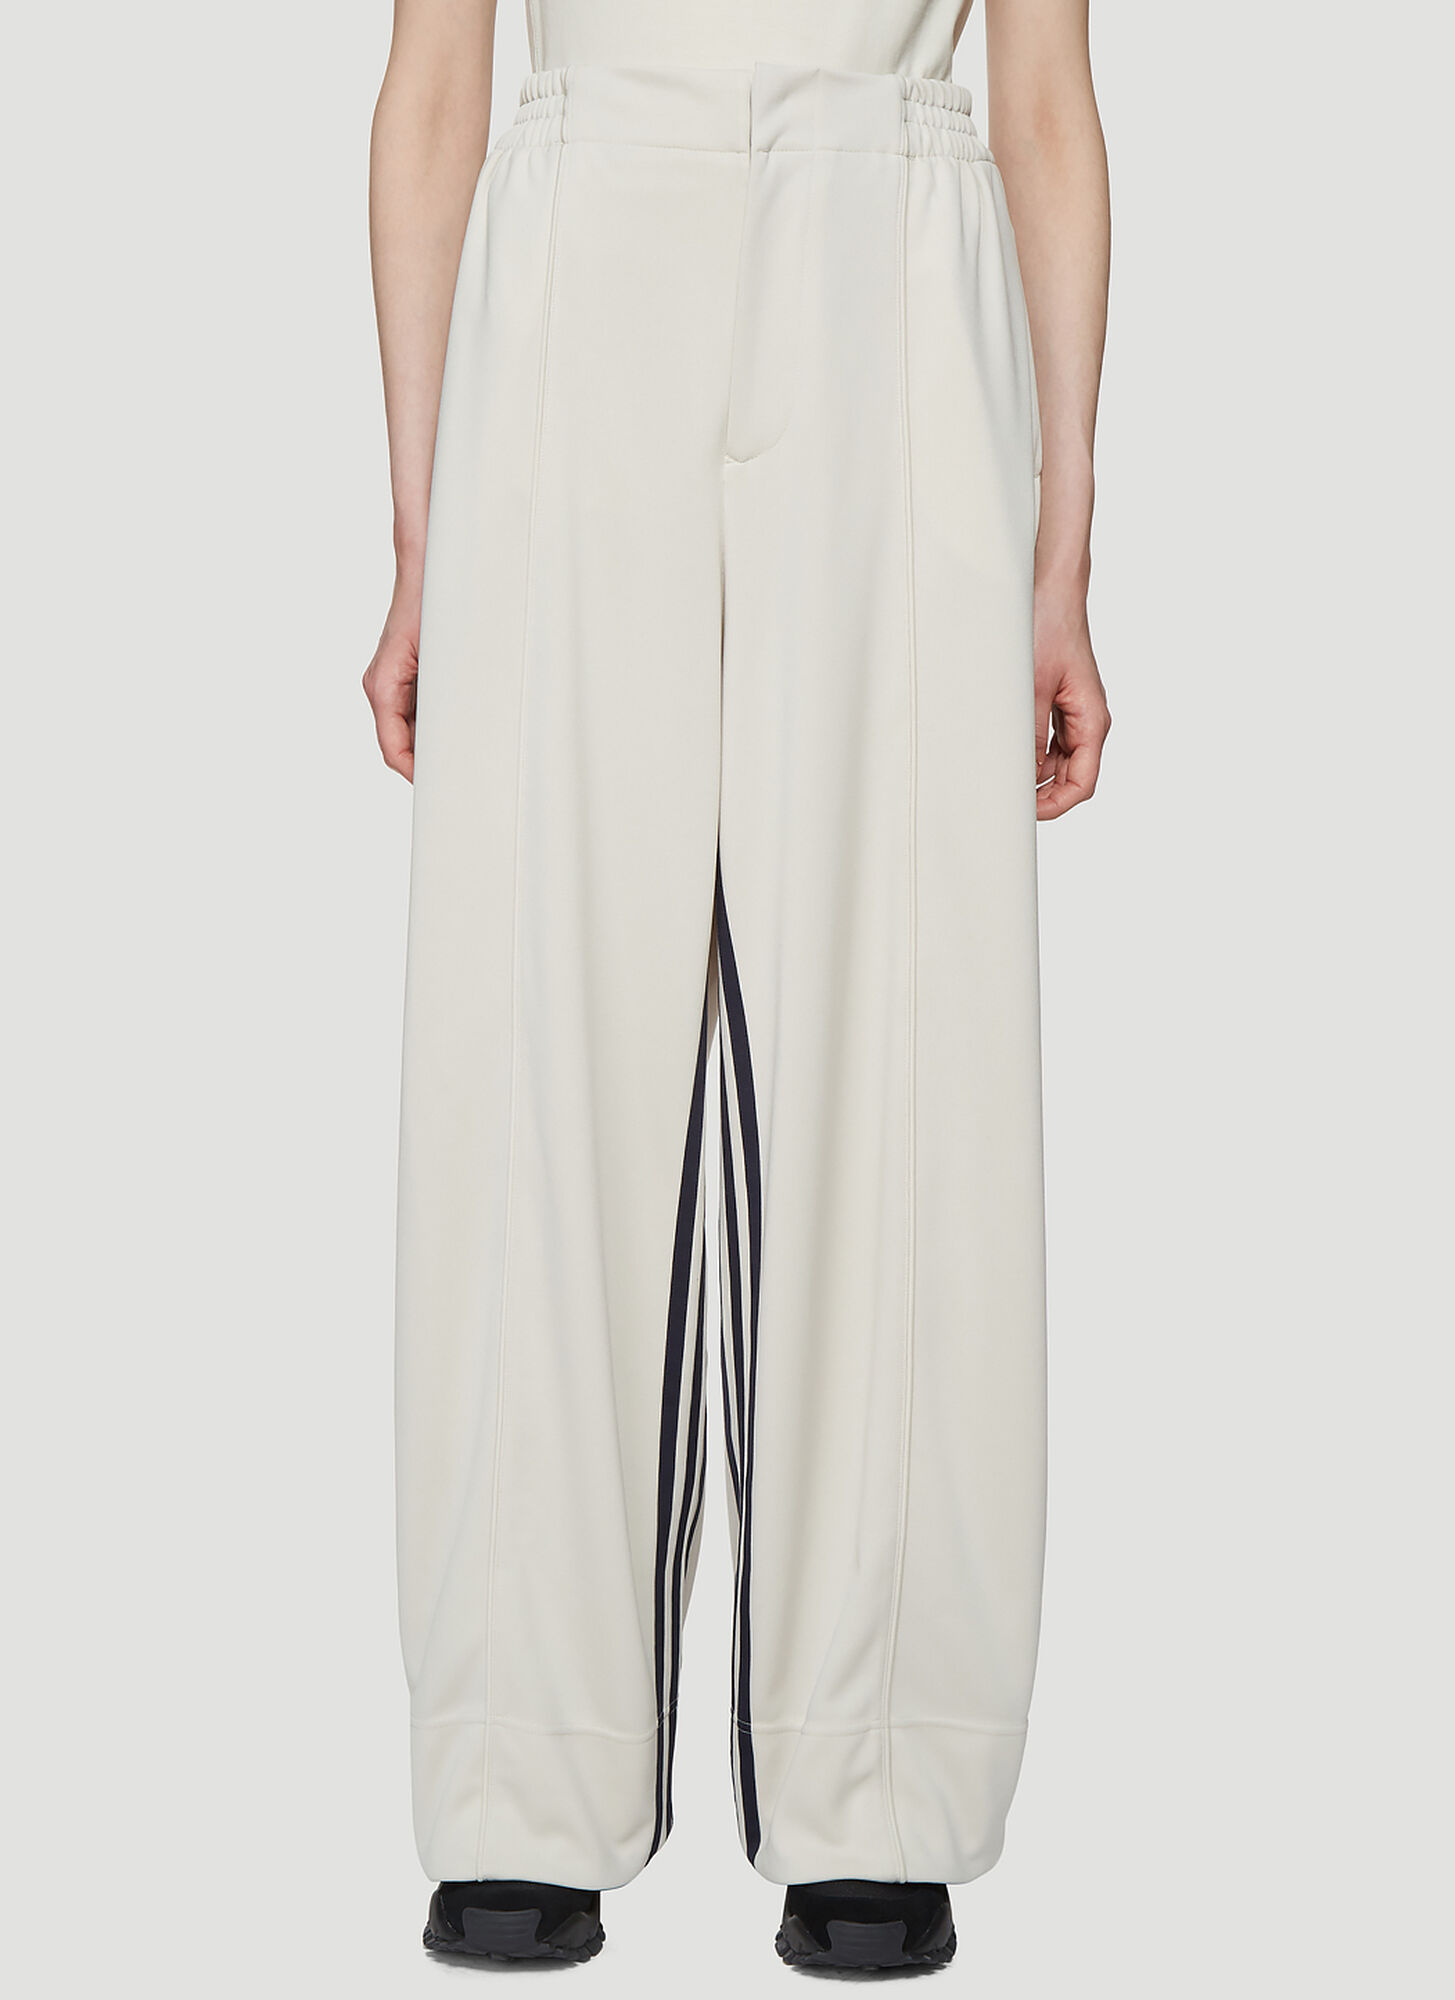 Y-3 Three Stripe Track Pants in Cream